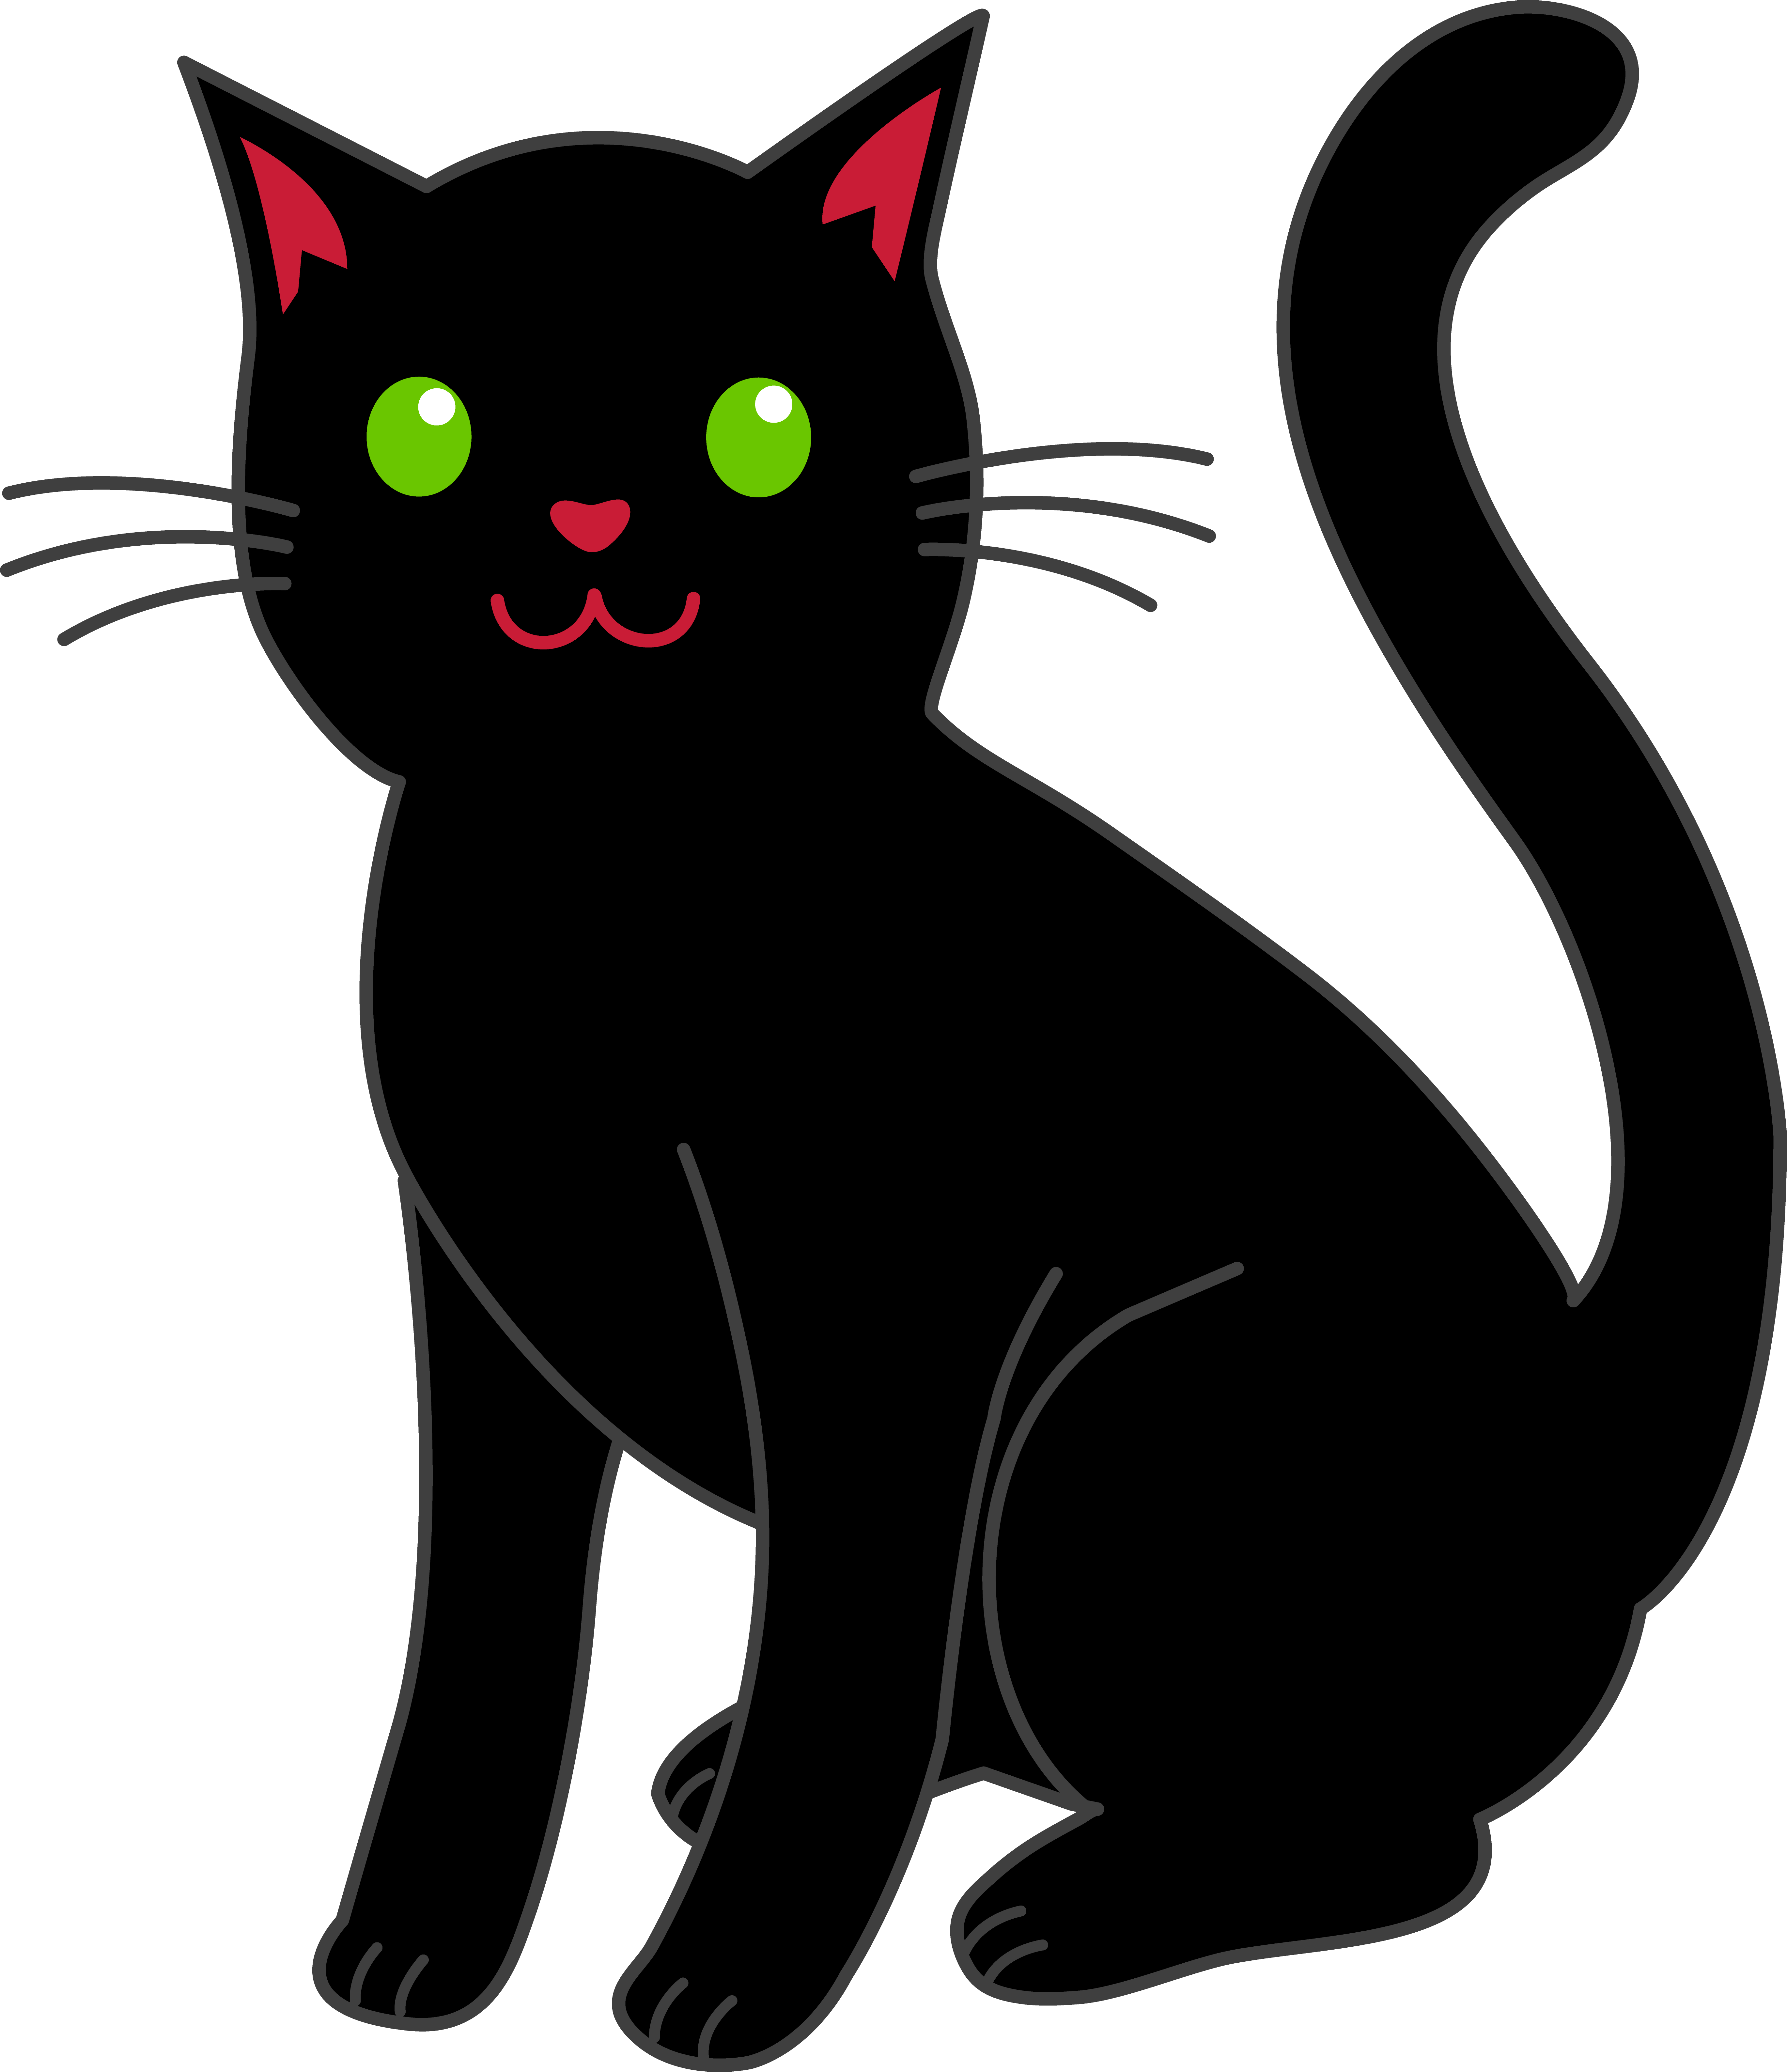 retro black cat clipart rh worldartsme com black cat clipart halloween black cat clipart black and white